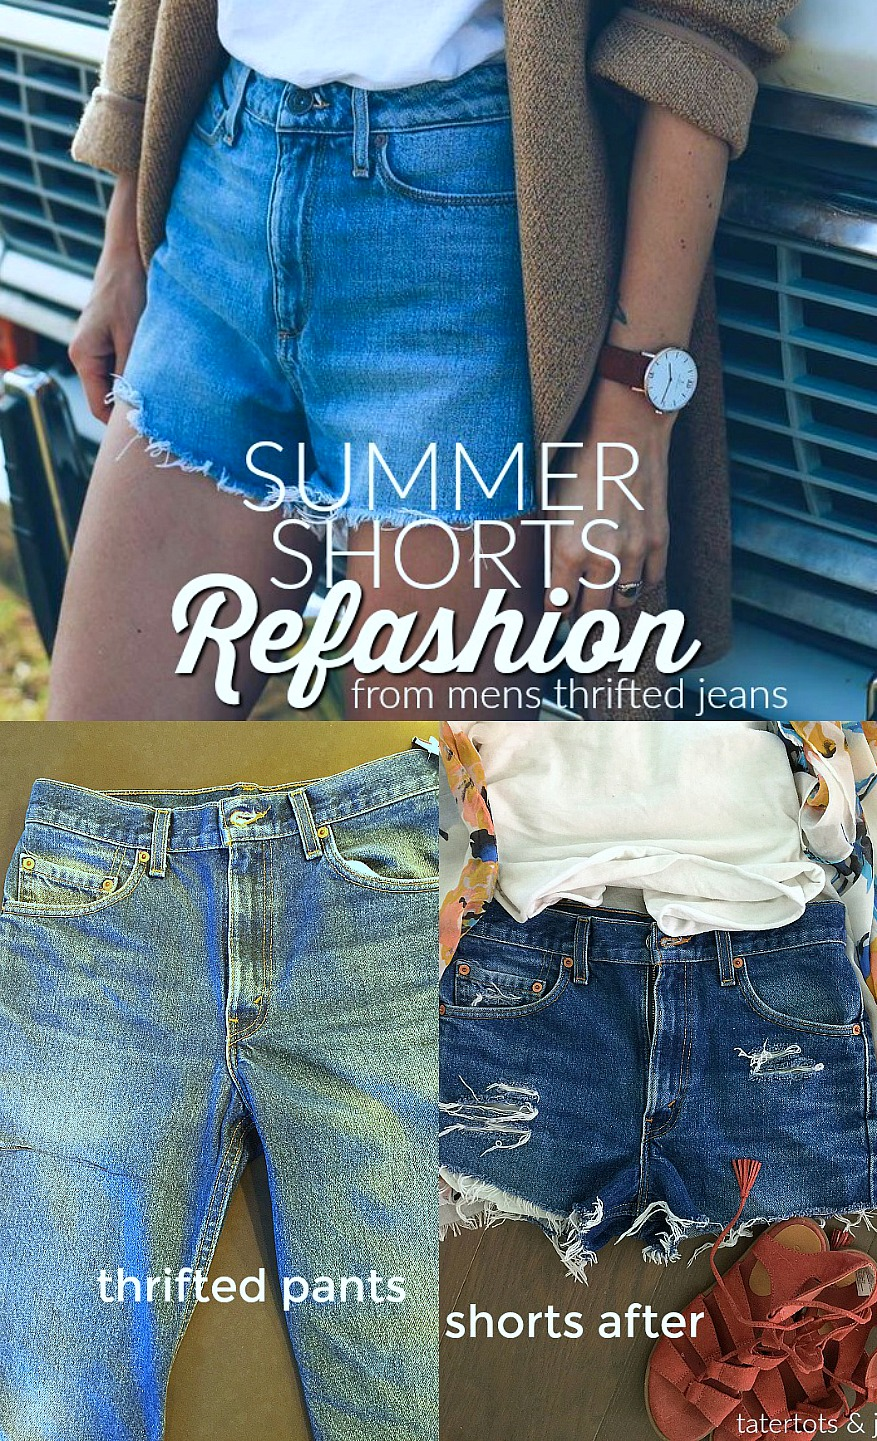 summer shorts refashion from thrifted jeans free refashion